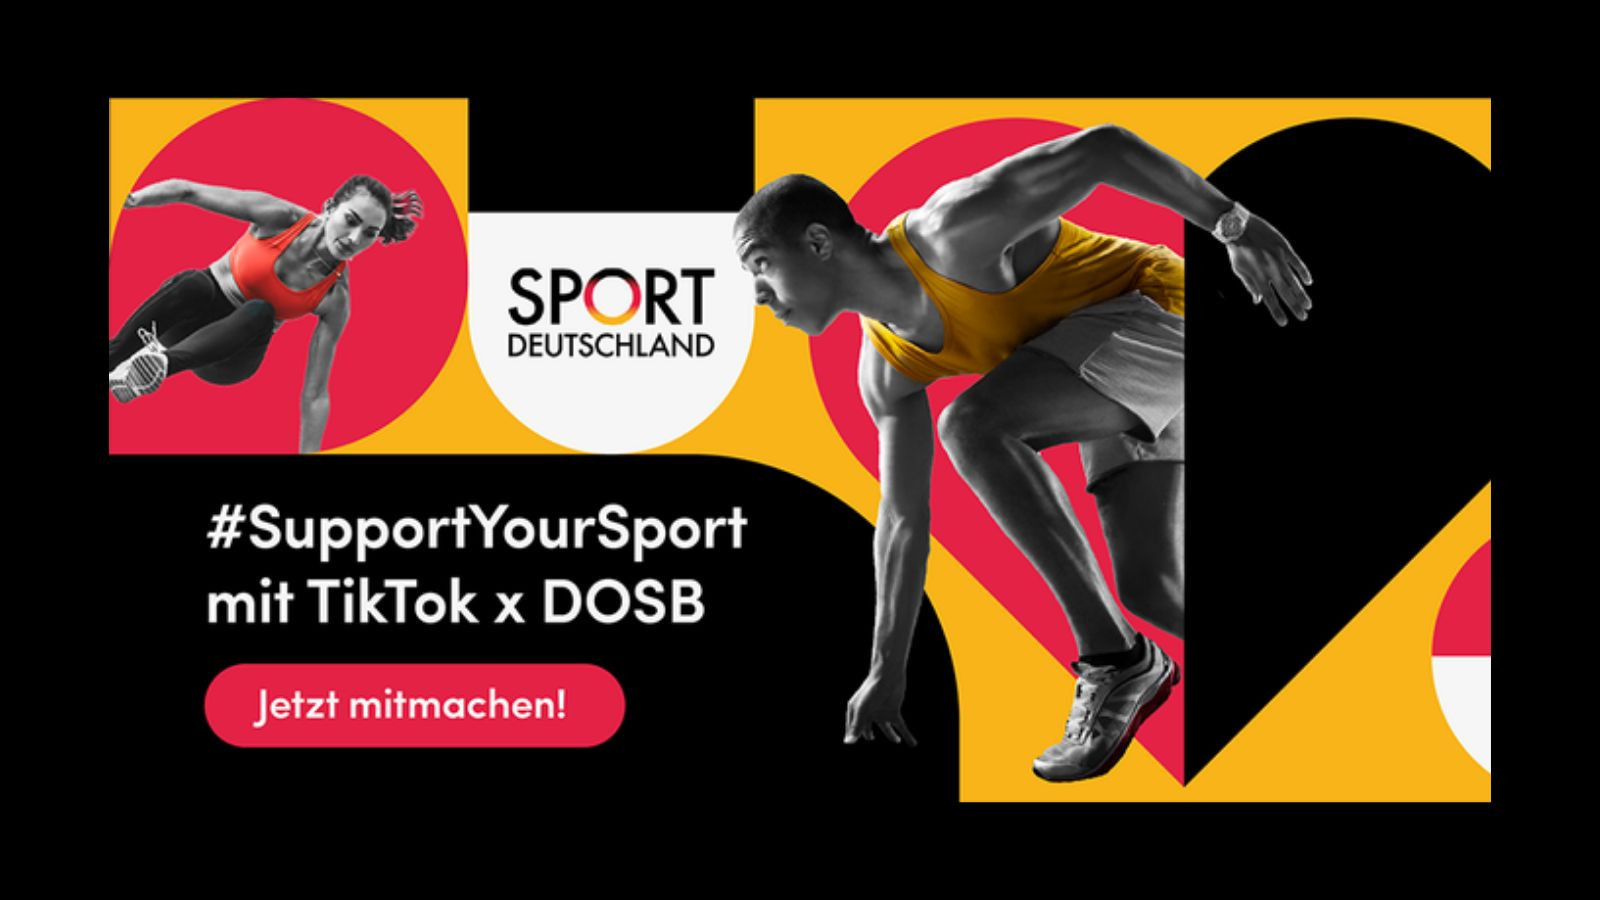 DOSB fundraising campaign with TikTok raises €100,000 for clubs